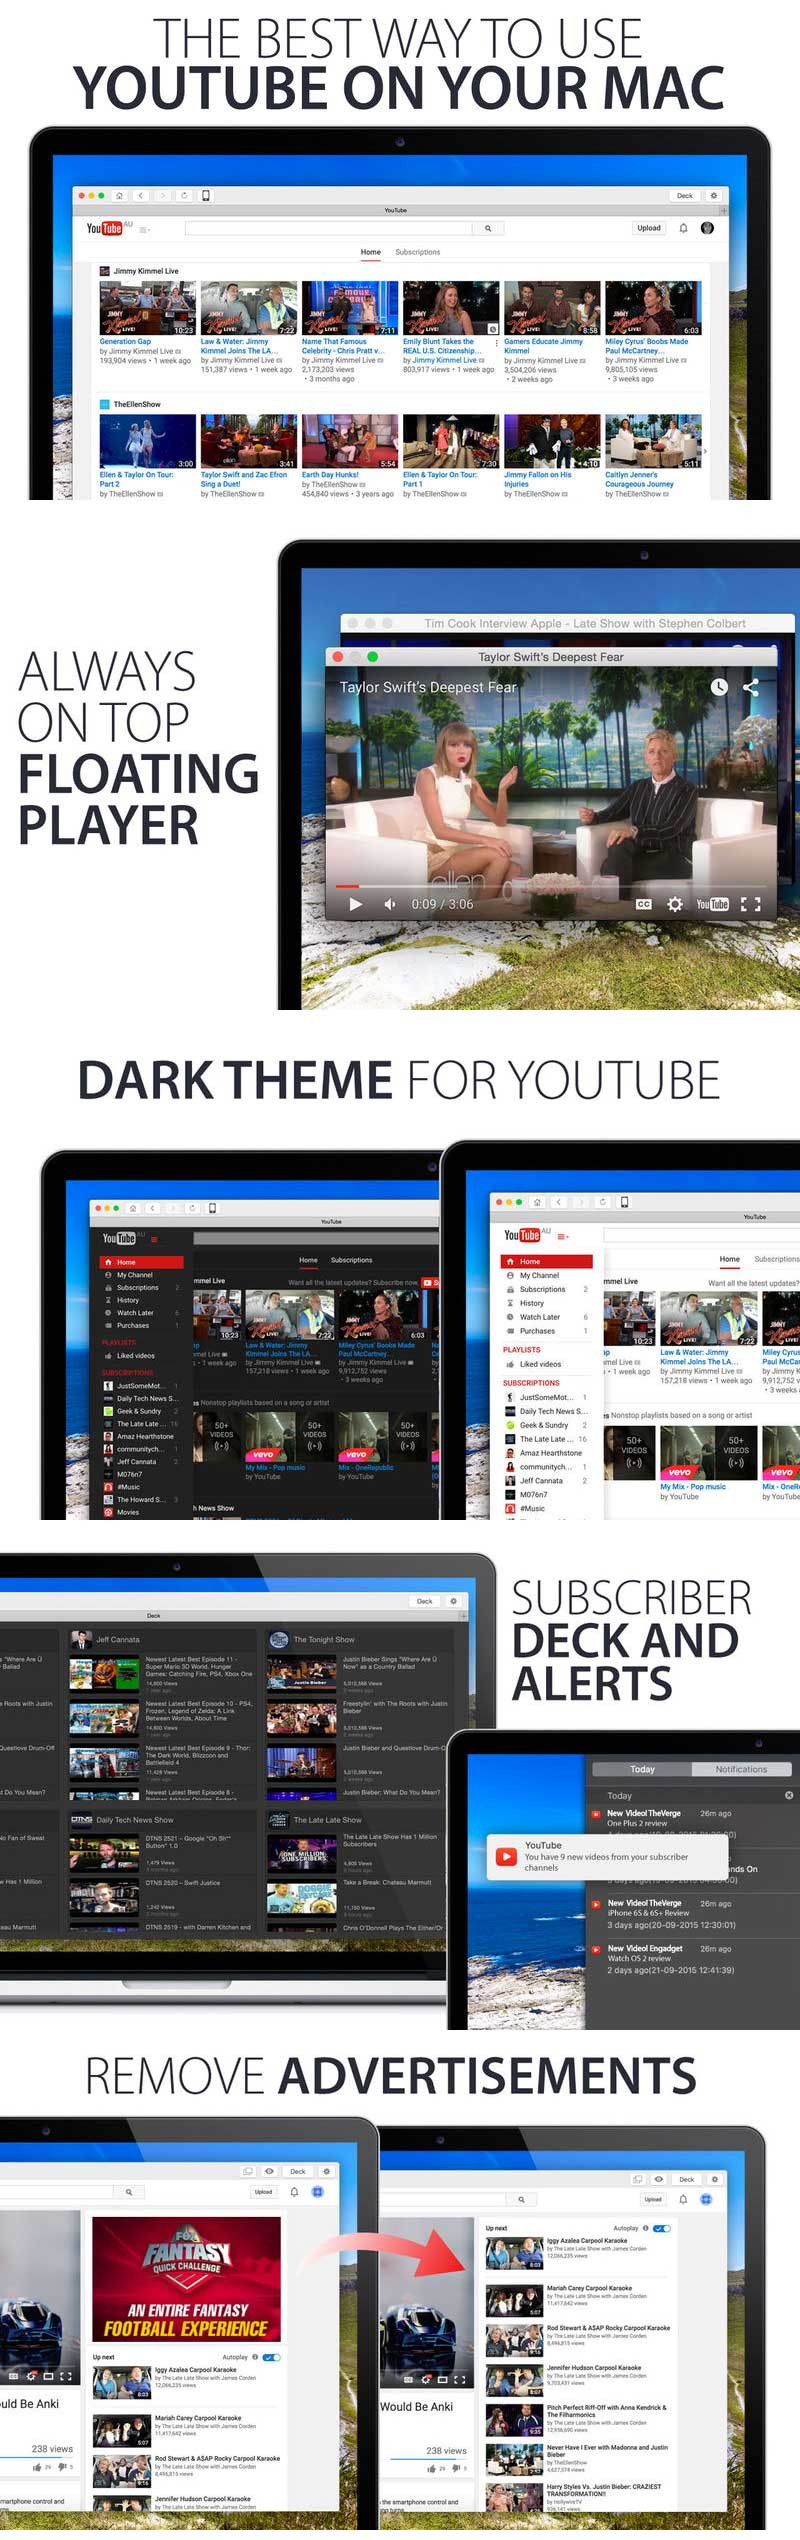 Player for YouTube Pro 1.2 for Mac 破解版 YouTube客户端